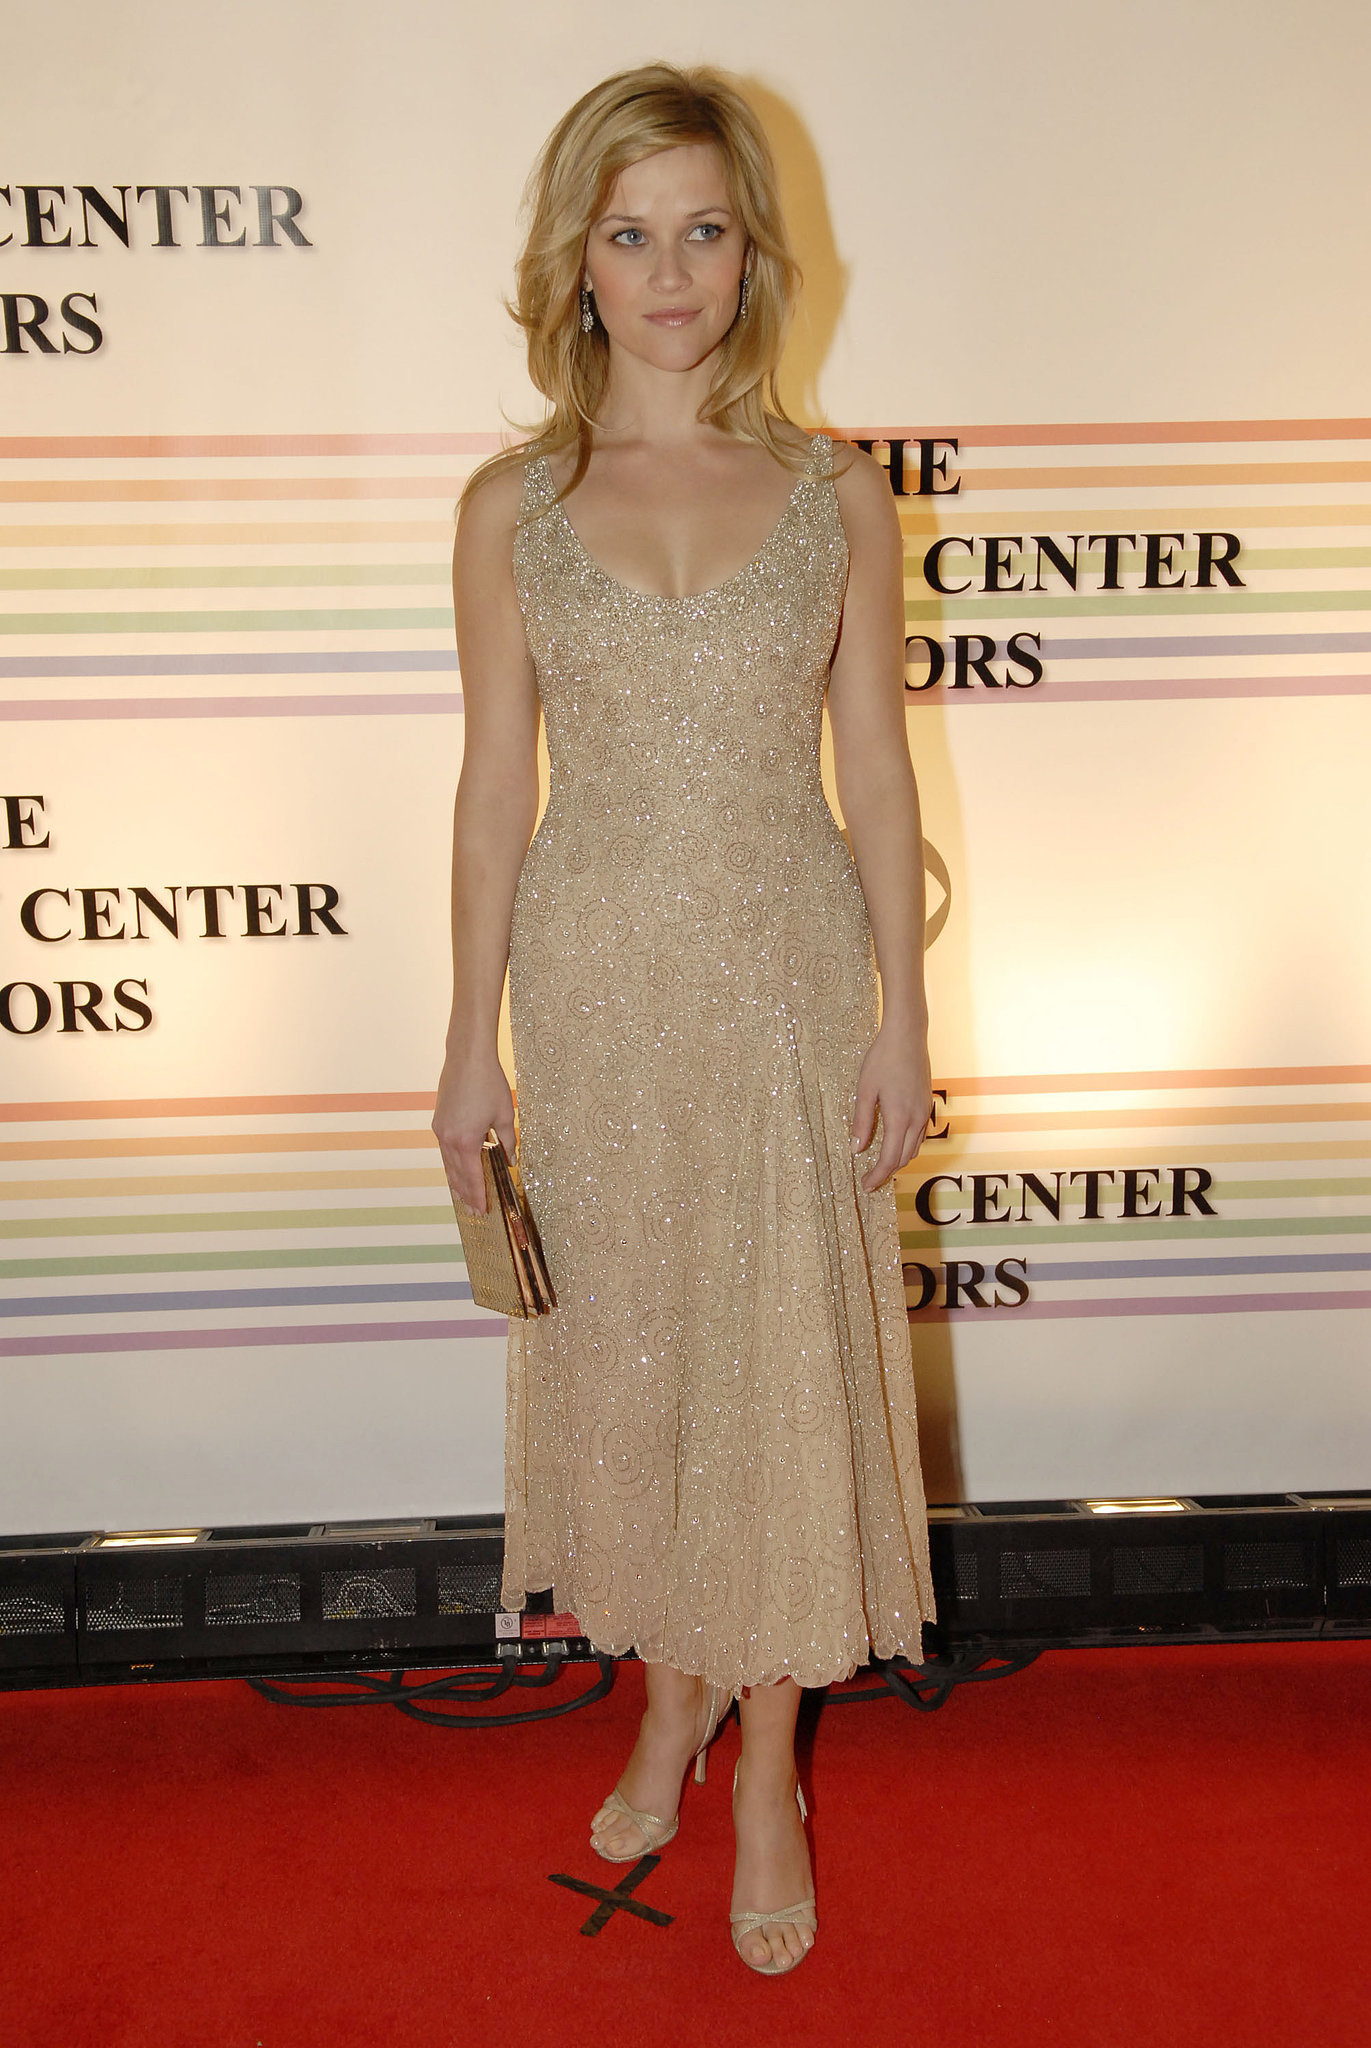 Reese Witherspoon in Beaded Dress at 2006 Kennedy Center Honors